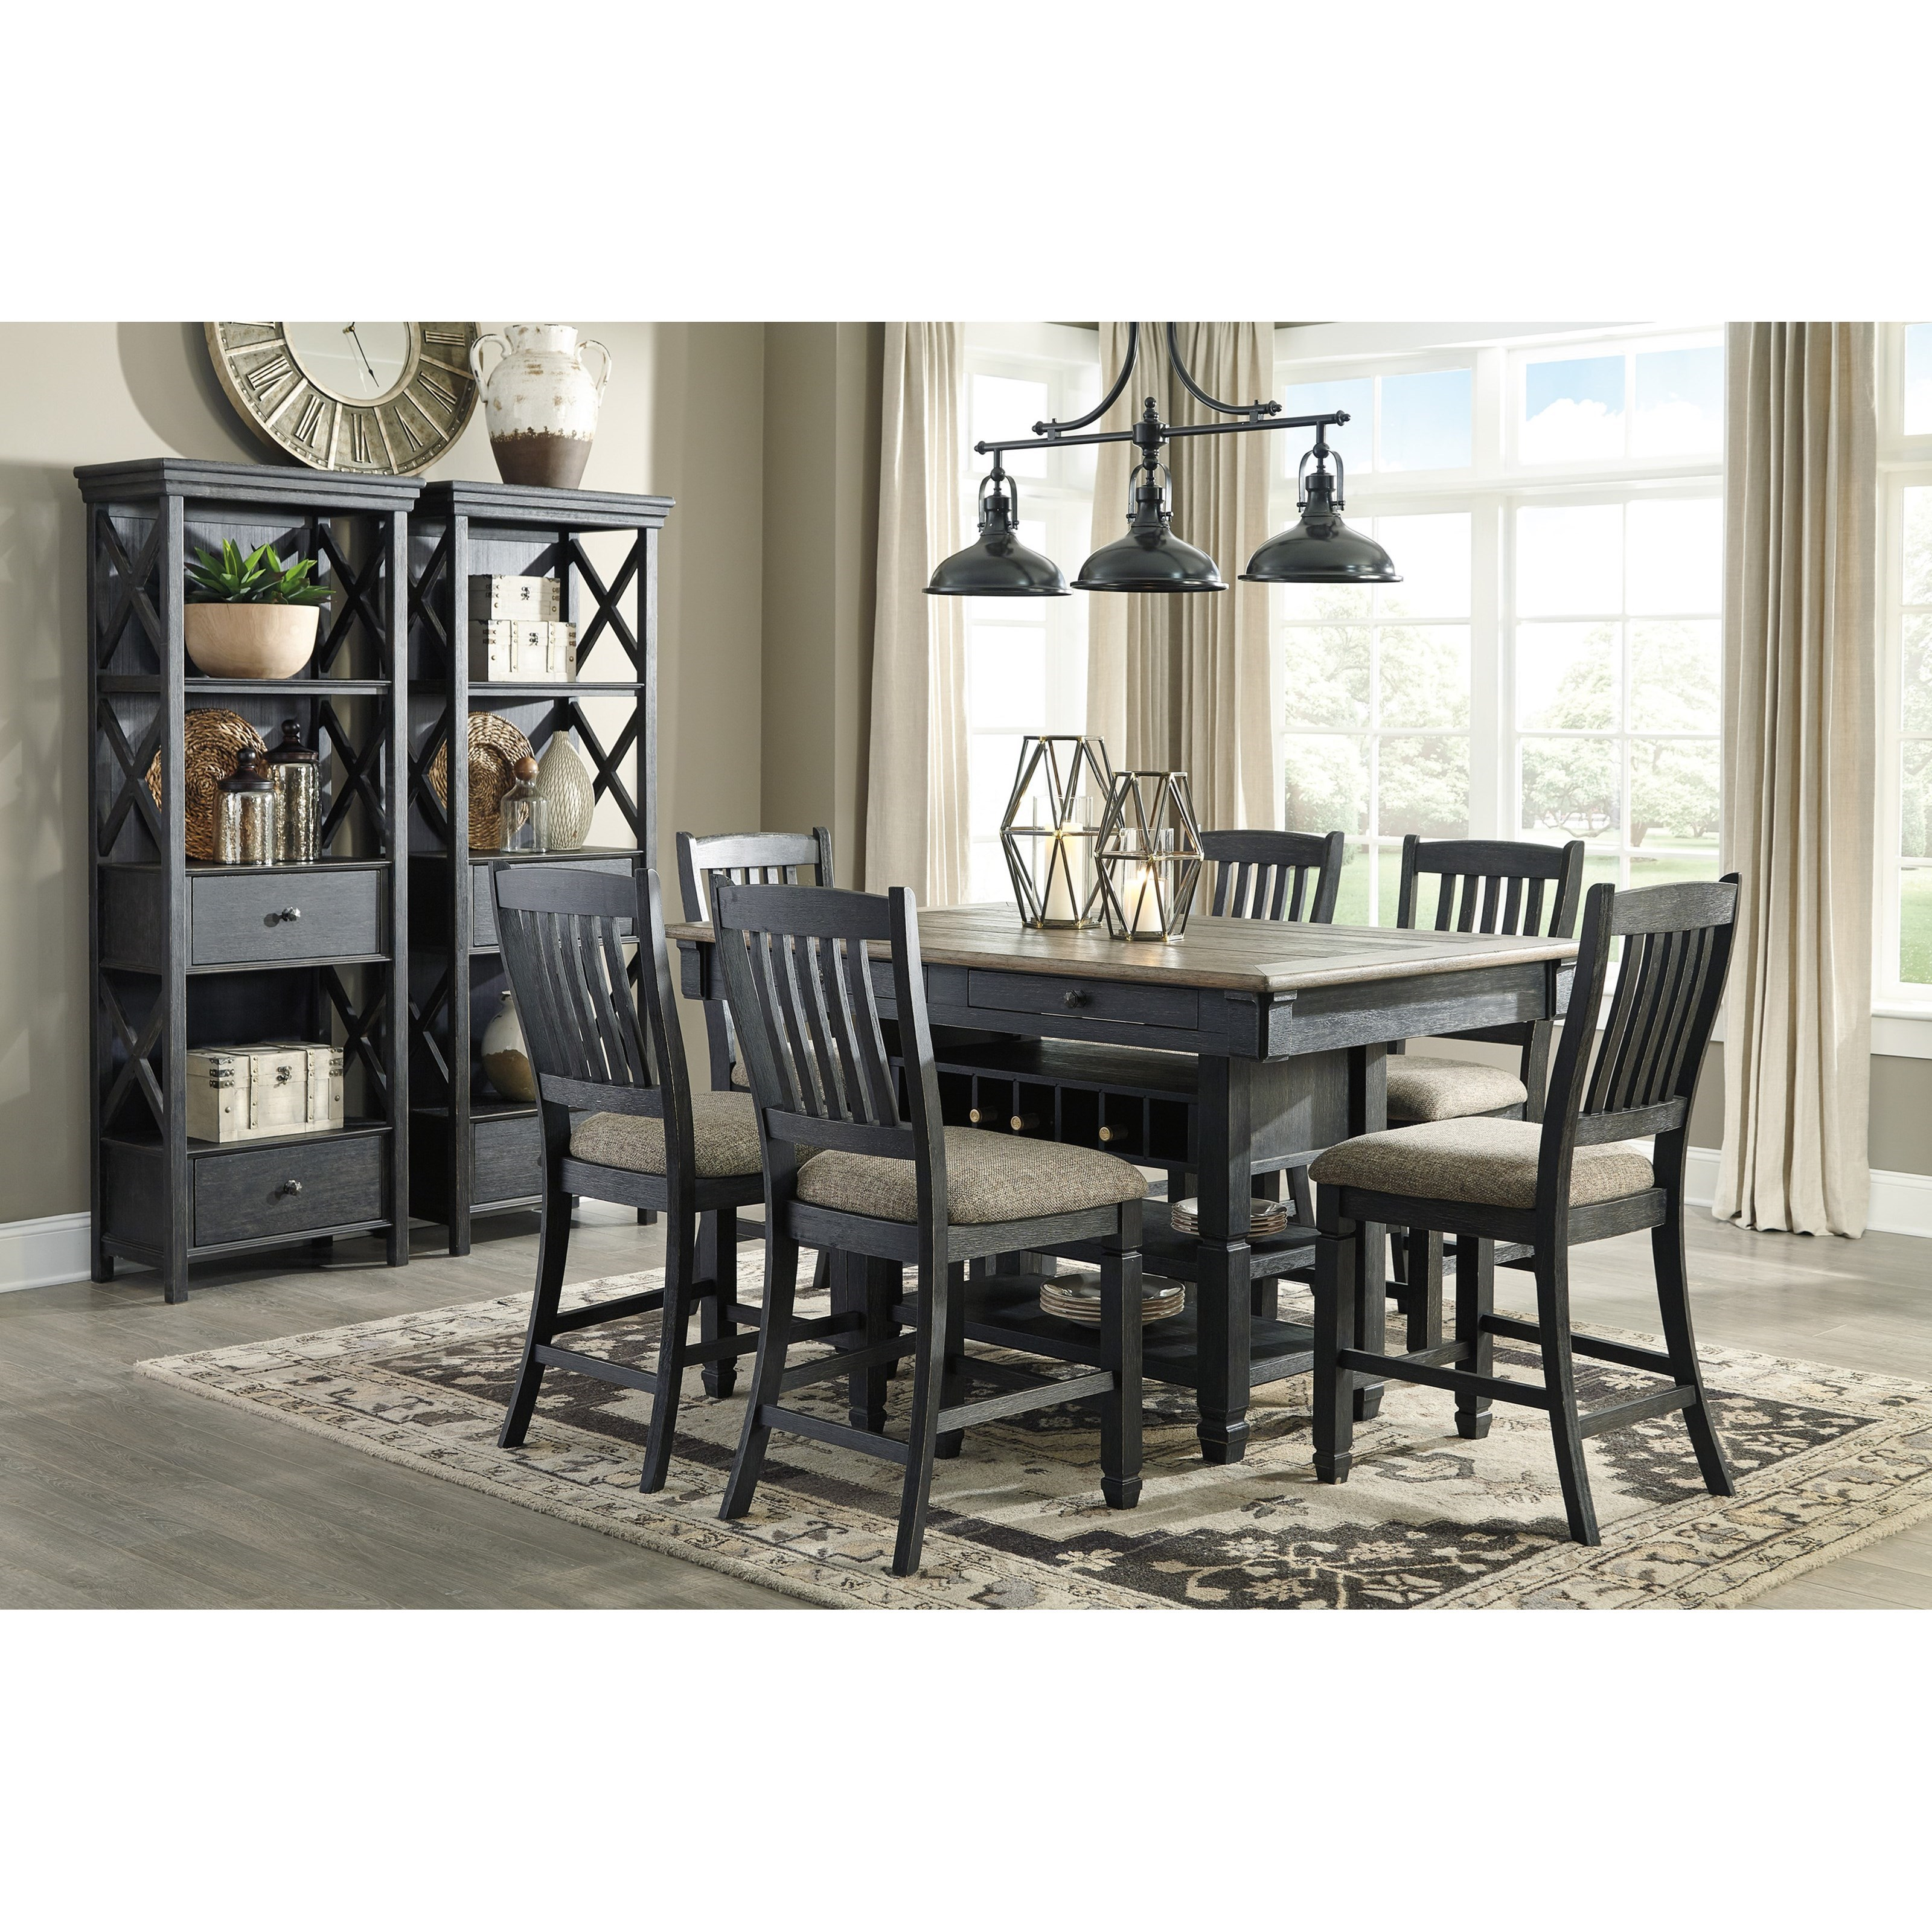 Signature Design By Ashley Tyler Creek D736 32 Relaxed